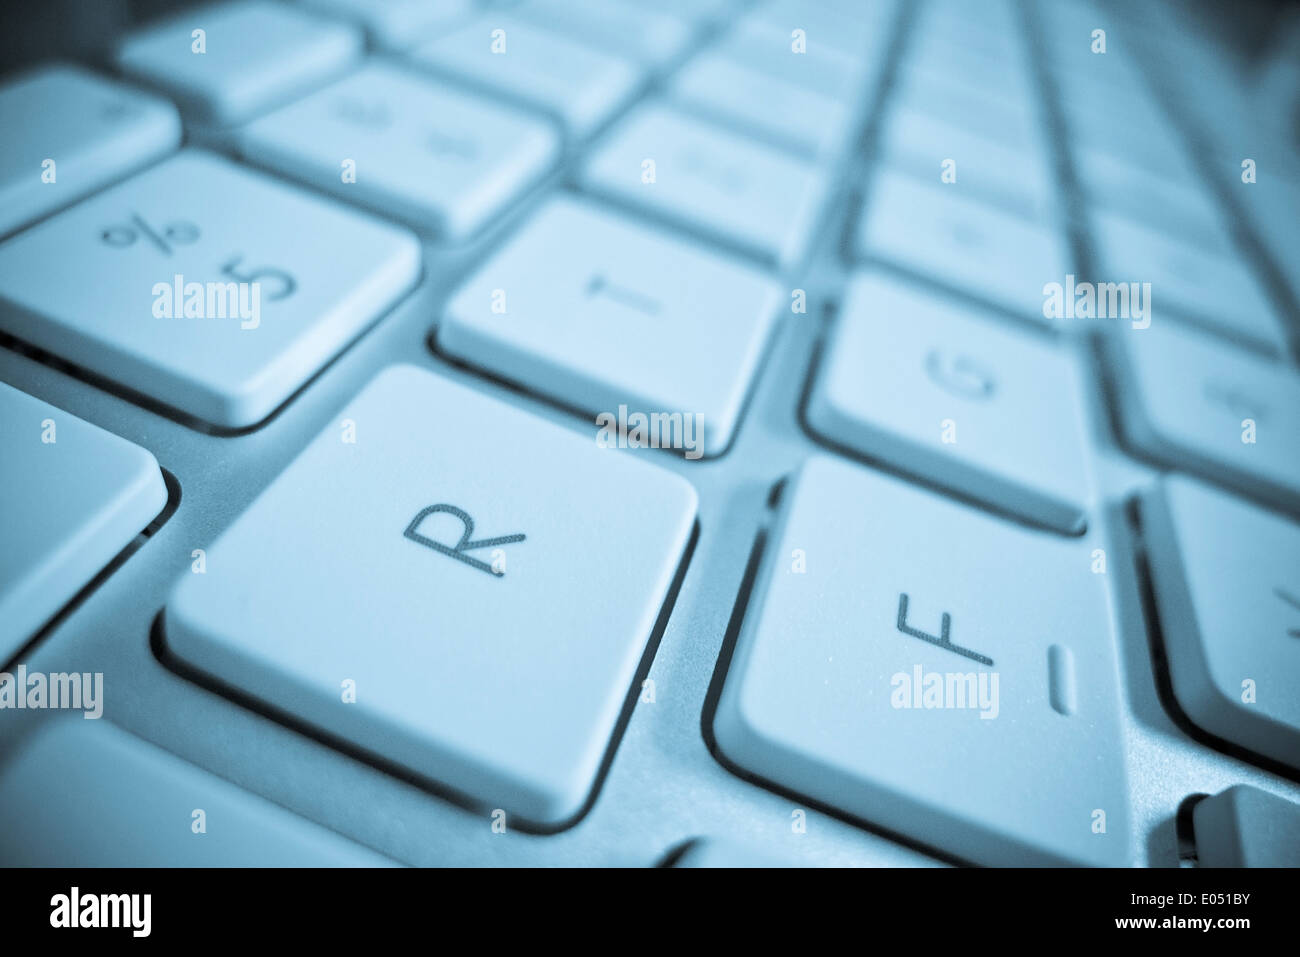 The keys of a computer in close-up. Data processing and Internet - Stock Image